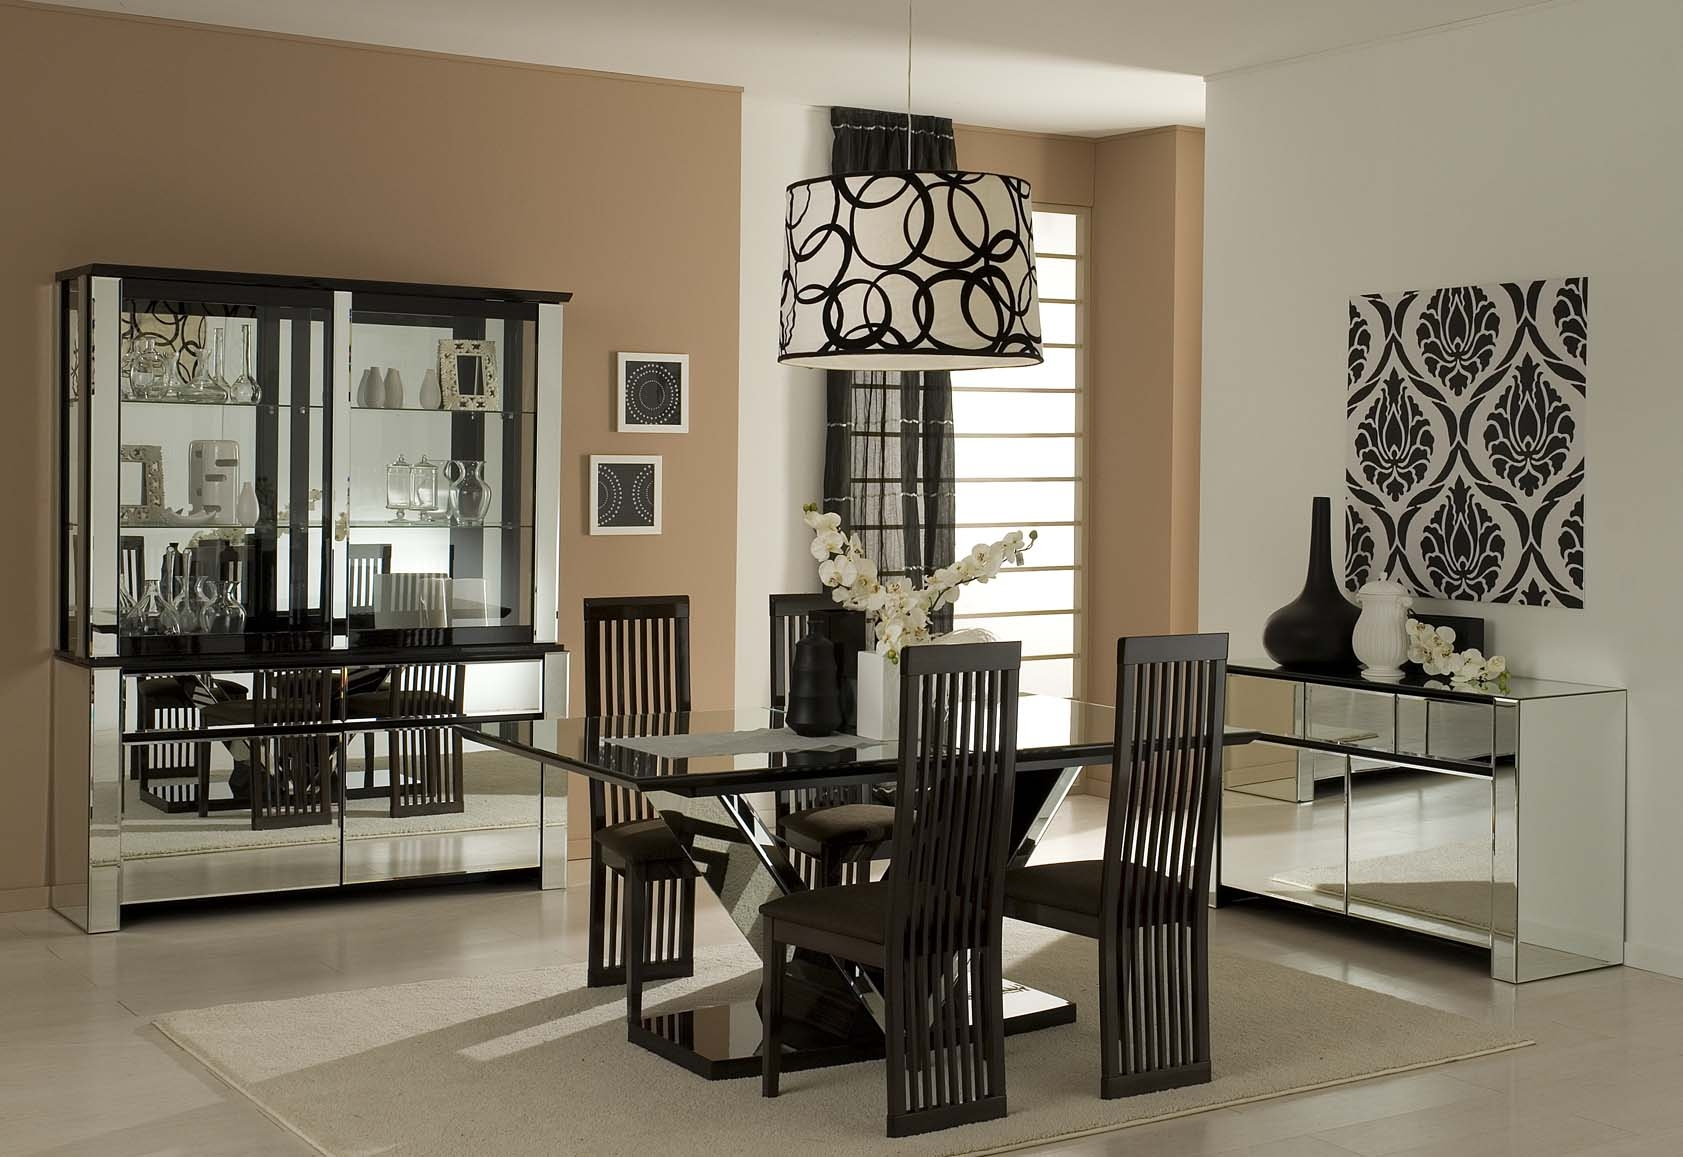 10 Ideas on How to Make Your Dining Room Designs Look Amazing2 dining room designs 10 Ideas on How to Make Your Dining Room Designs Look Amazing 10 Ideas on How to Make Your Dining Room Designs Look Amazing2